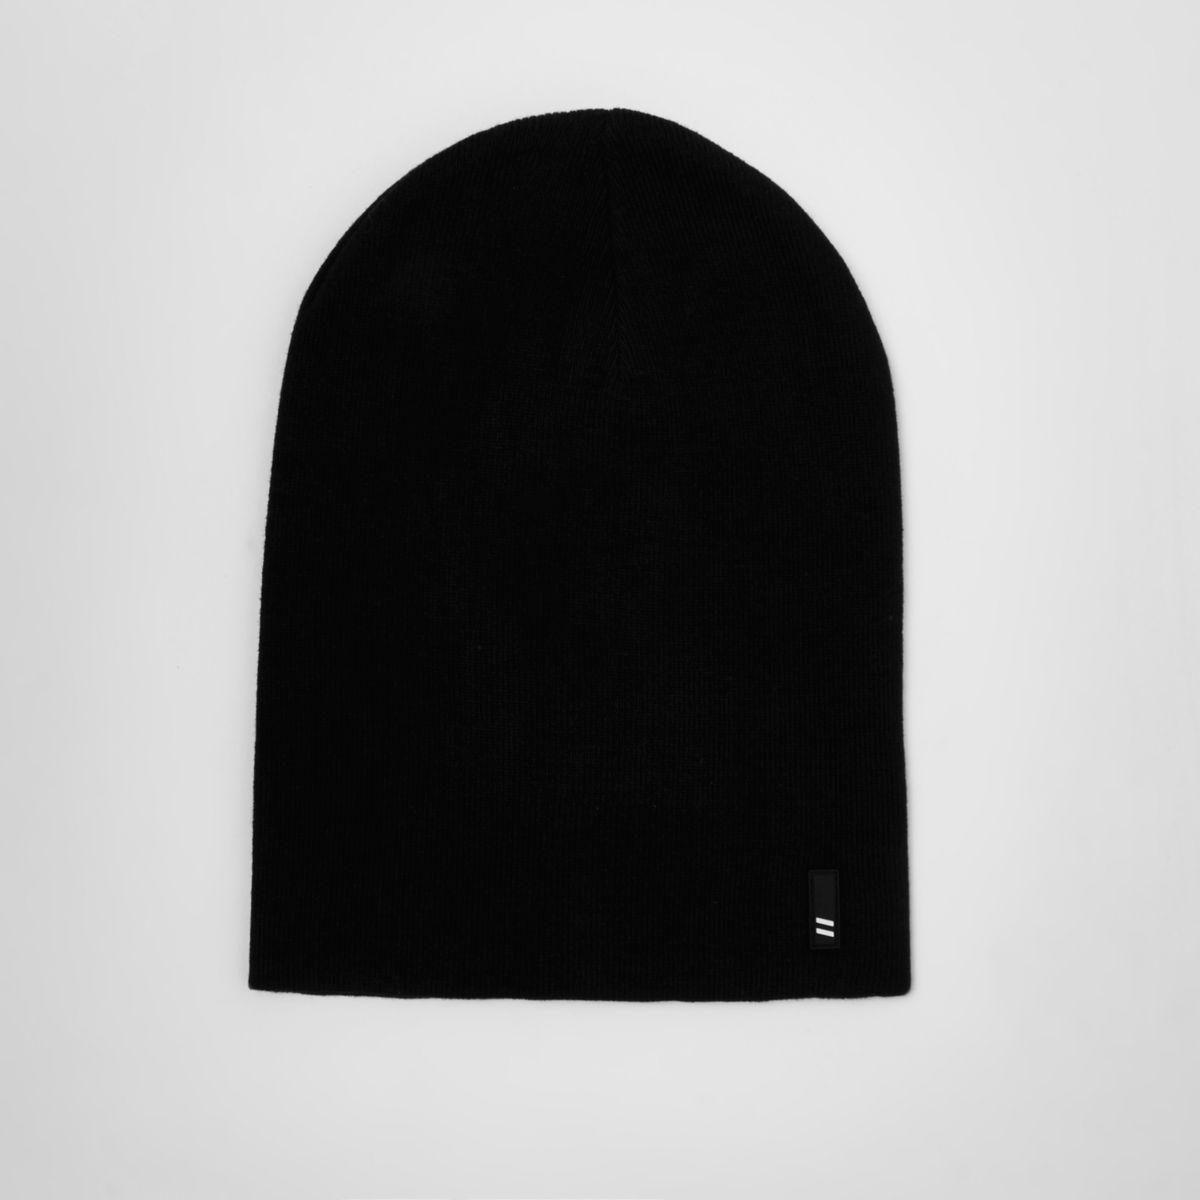 Bonnet large noir